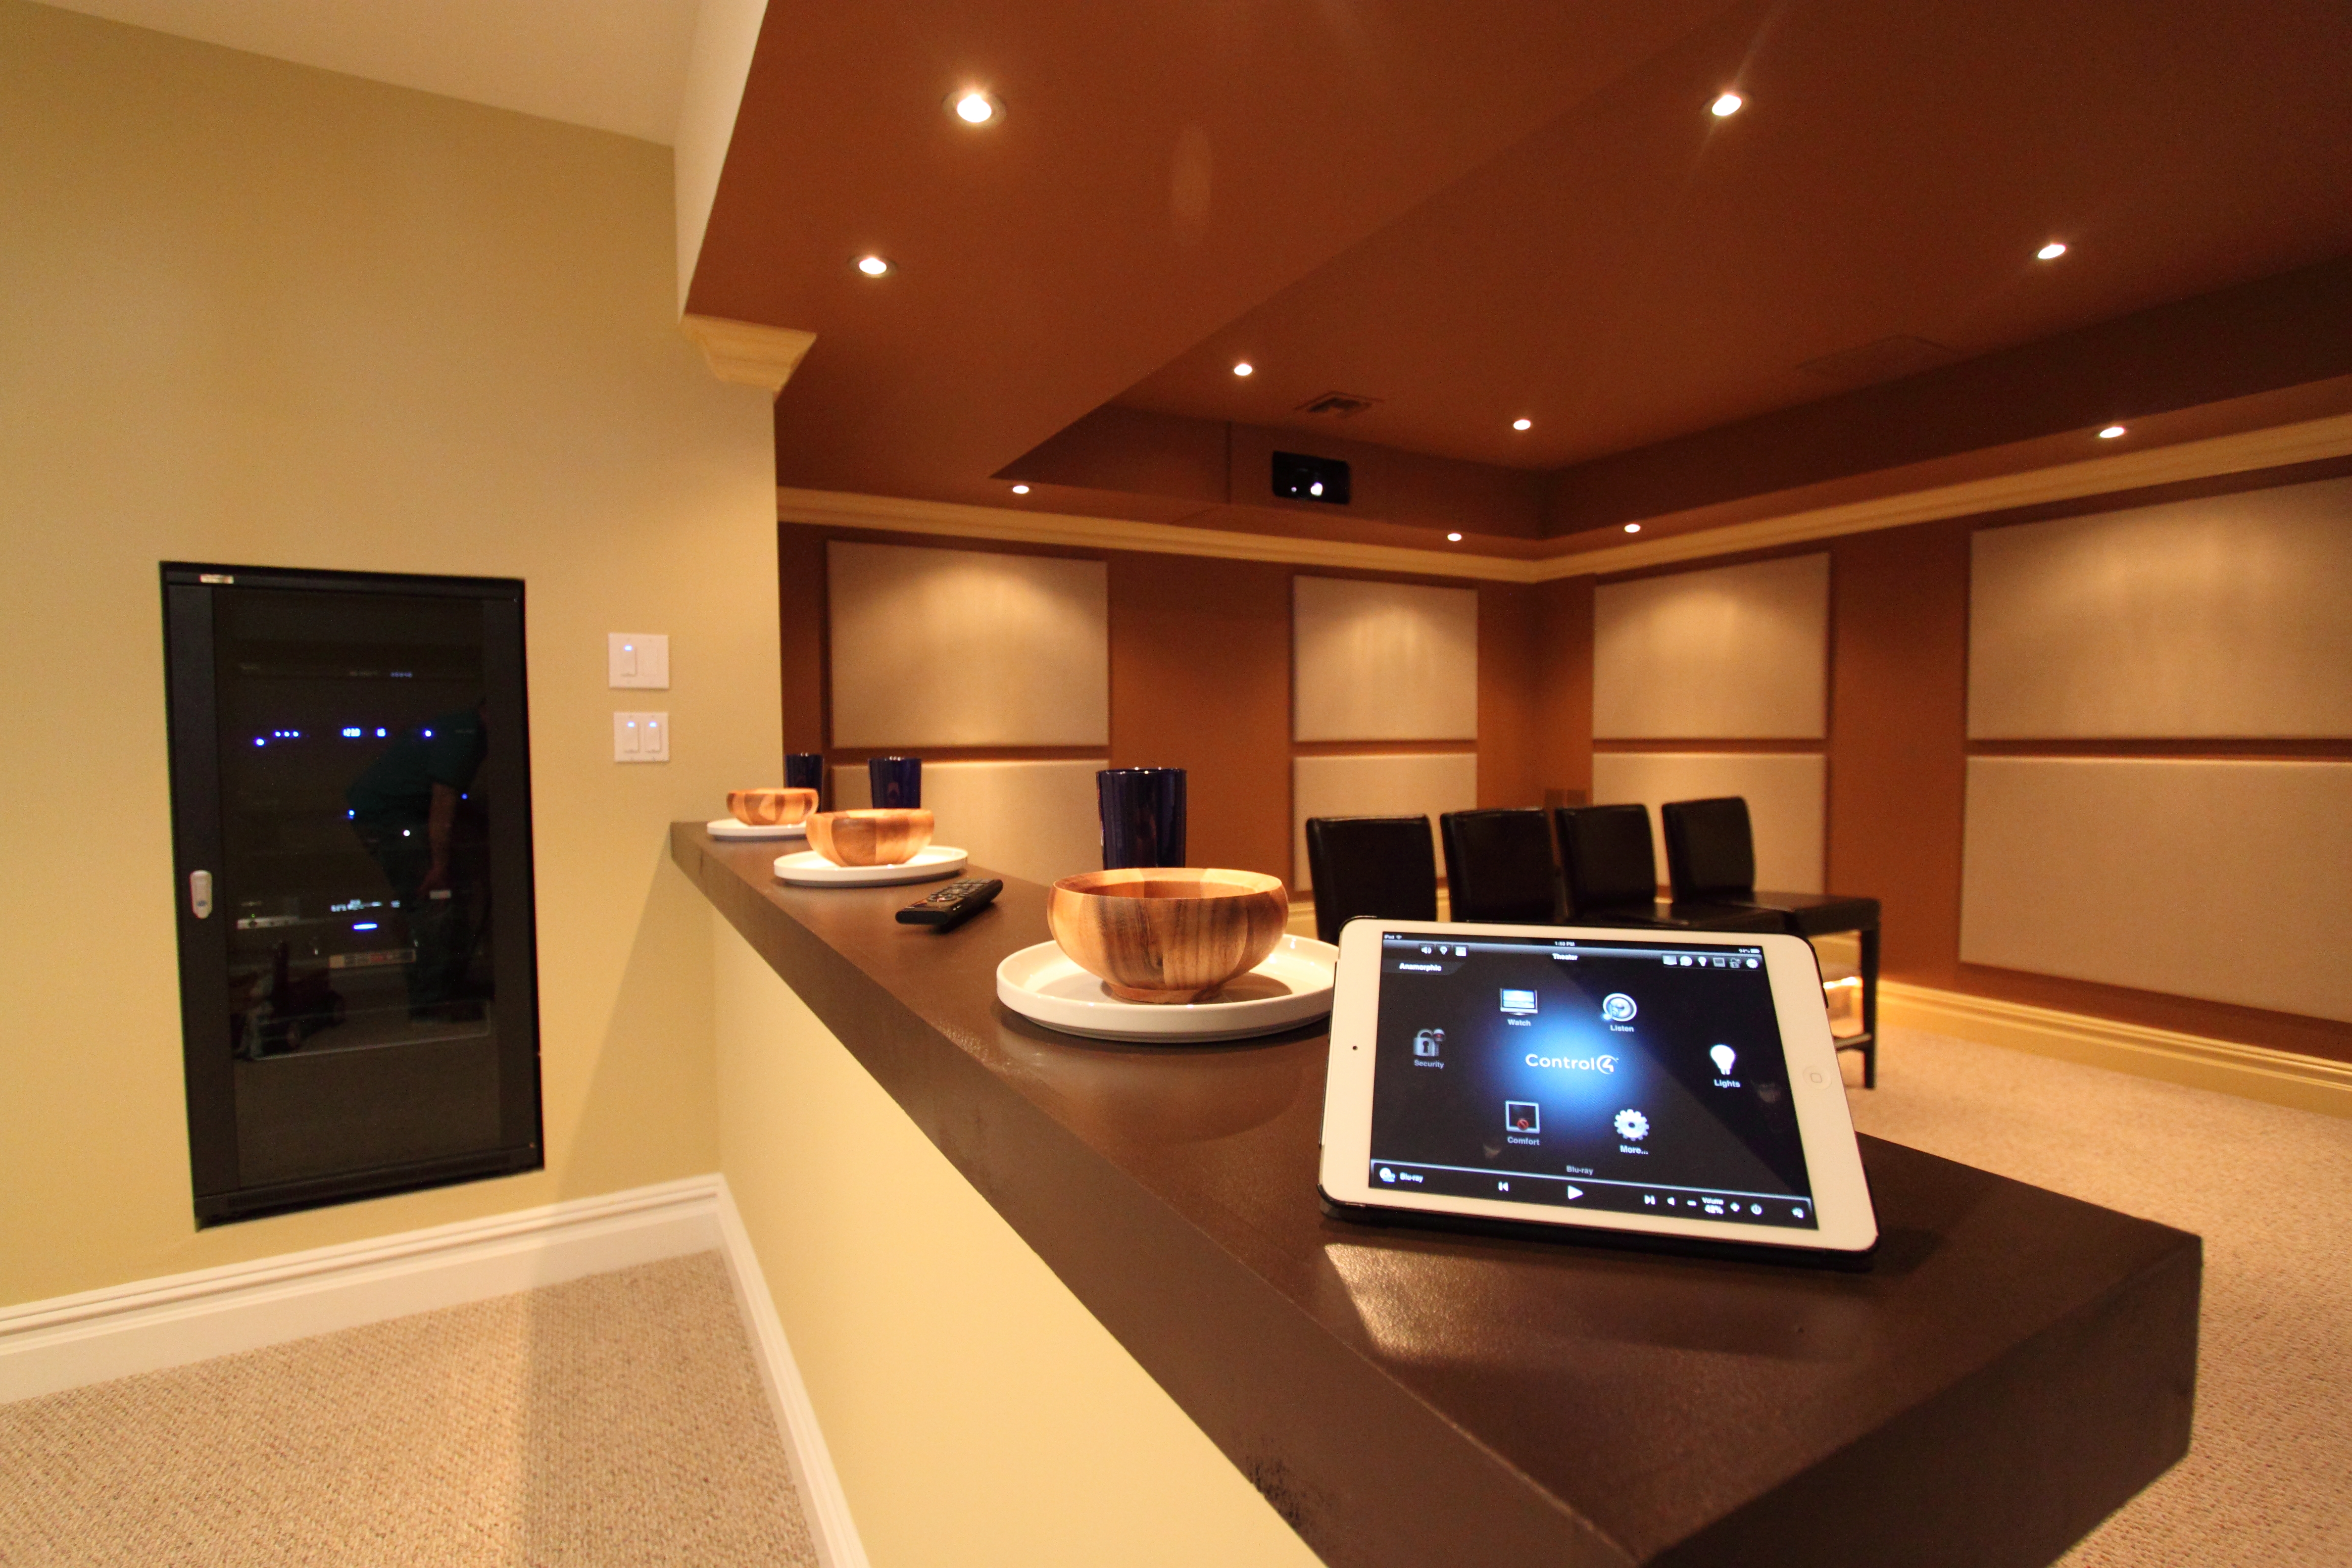 Best Kitchen Gallery: Lighting An Important Ponent To A Home Theater Experience Home of Home Theater Lighting Design  on rachelxblog.com